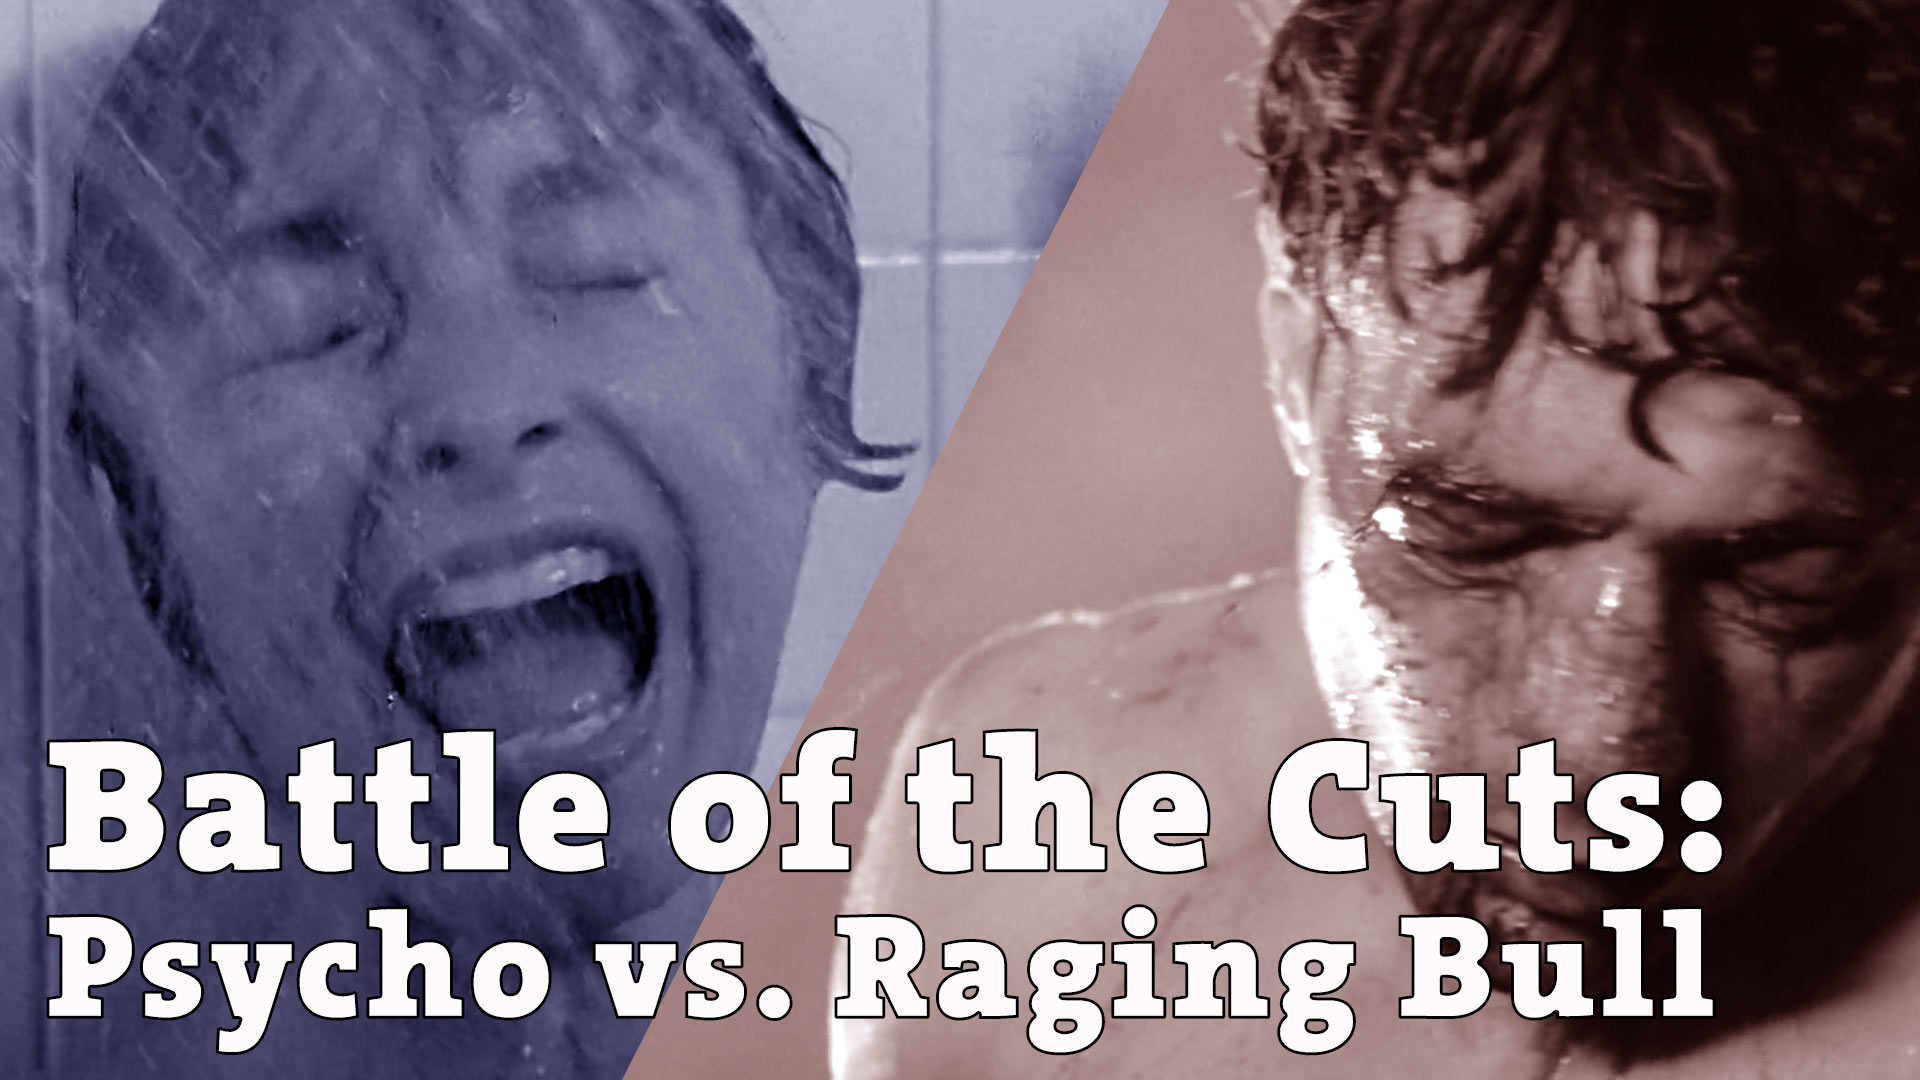 Battle of the cuts: Psycho vs. Raging Bull